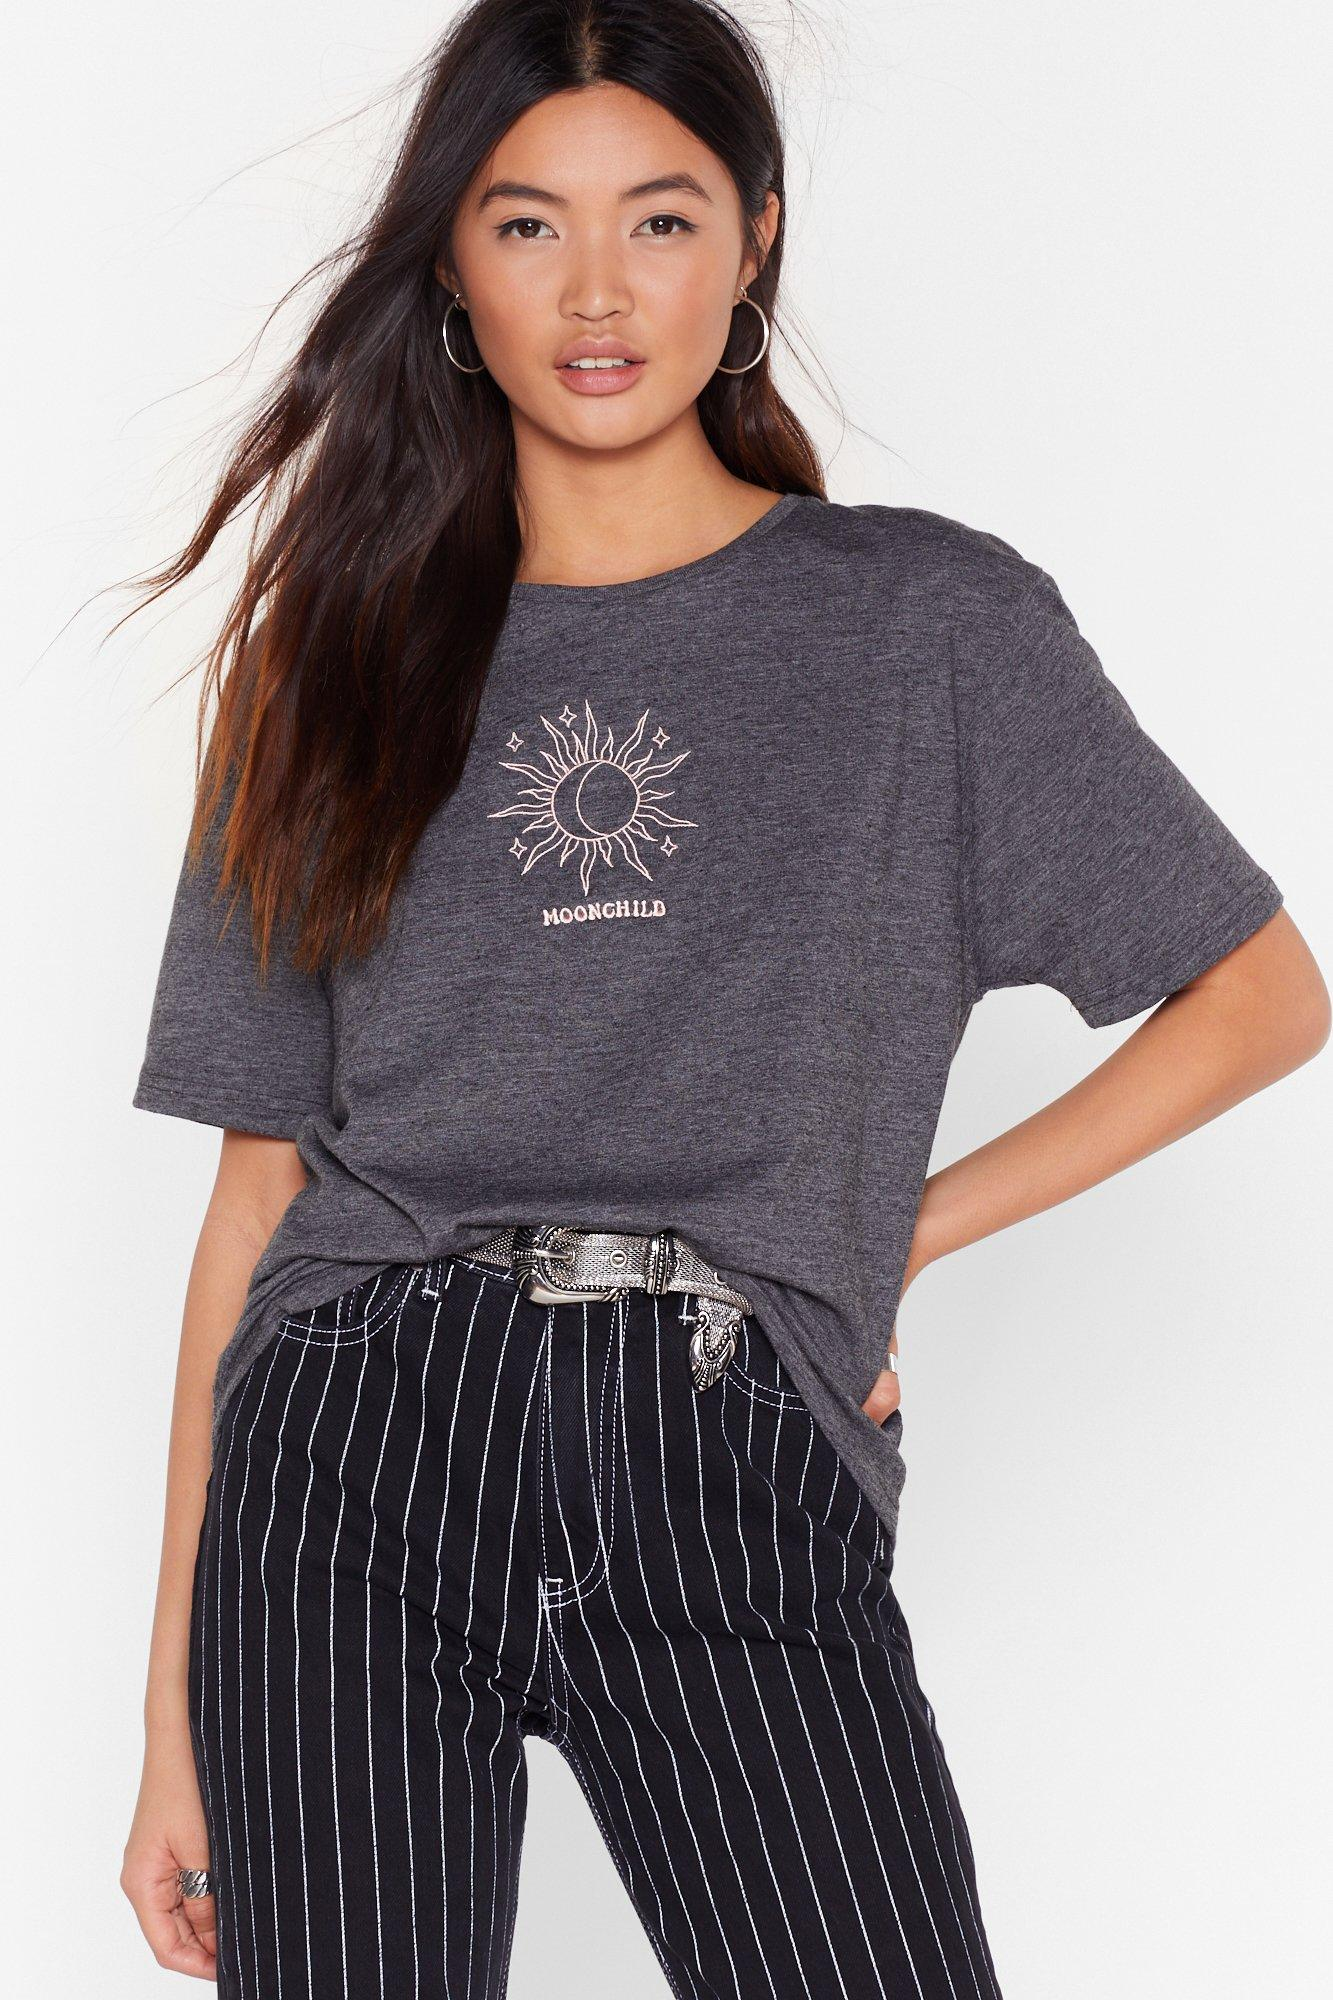 Image of Stay Wild Moon Child Graphic Tee